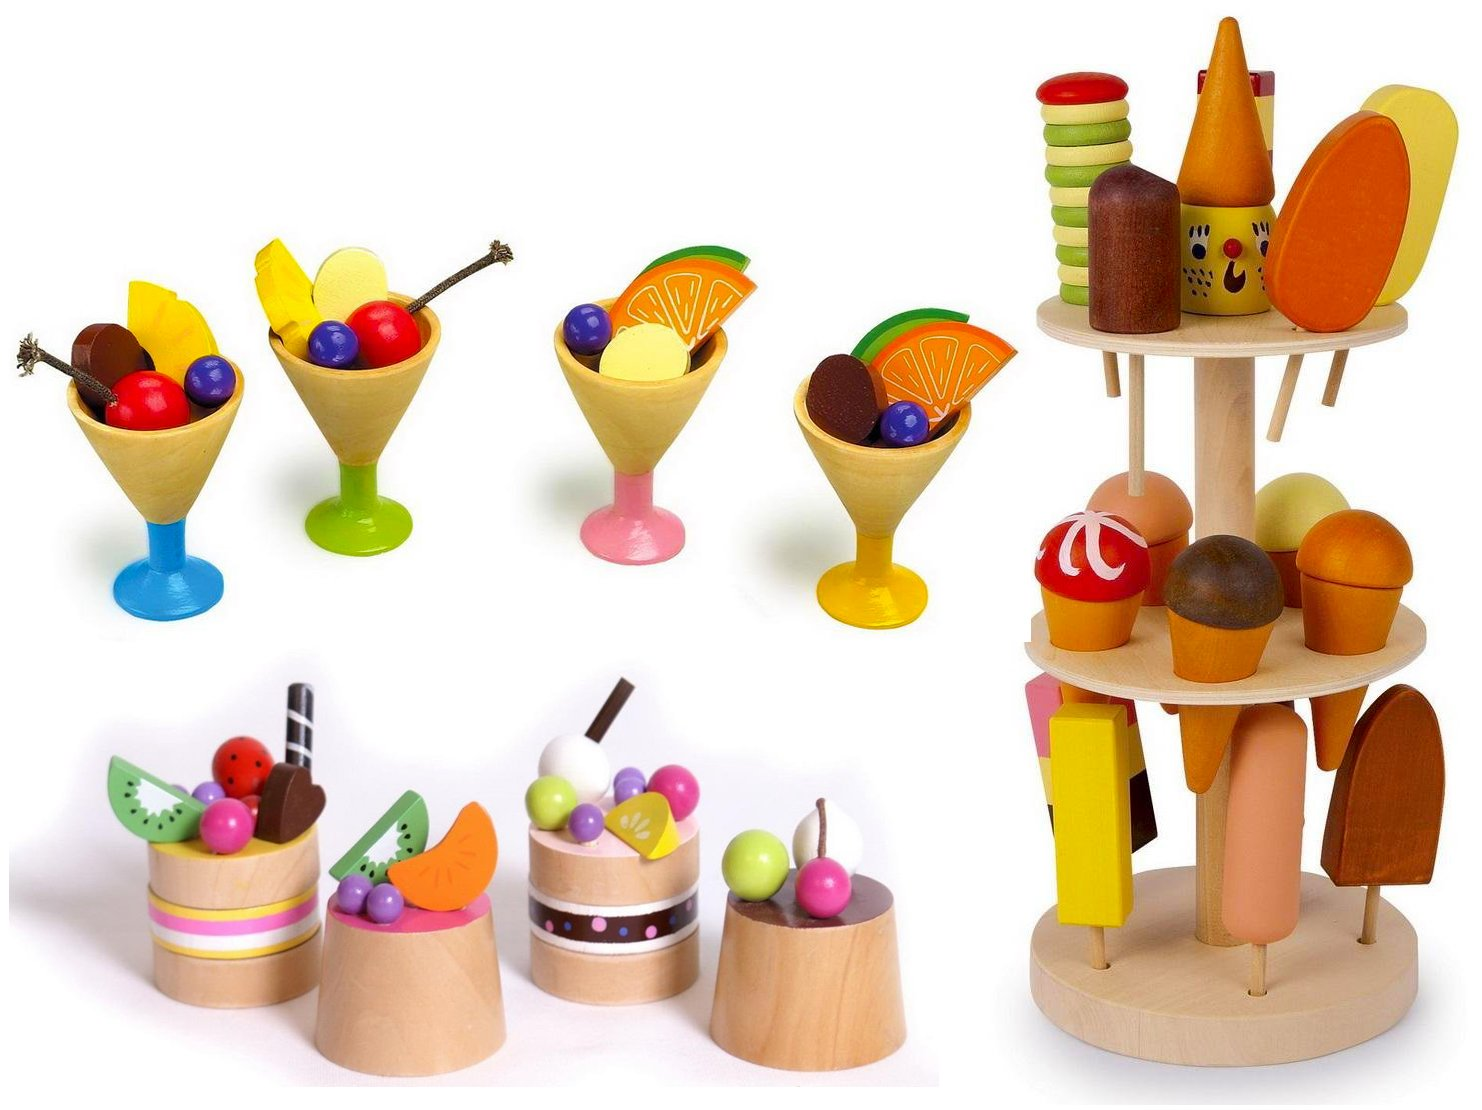 Wooden Childrens Play Food Set - Ice Cream, Lolly Stand and Fruit Cakes Tarts HHL